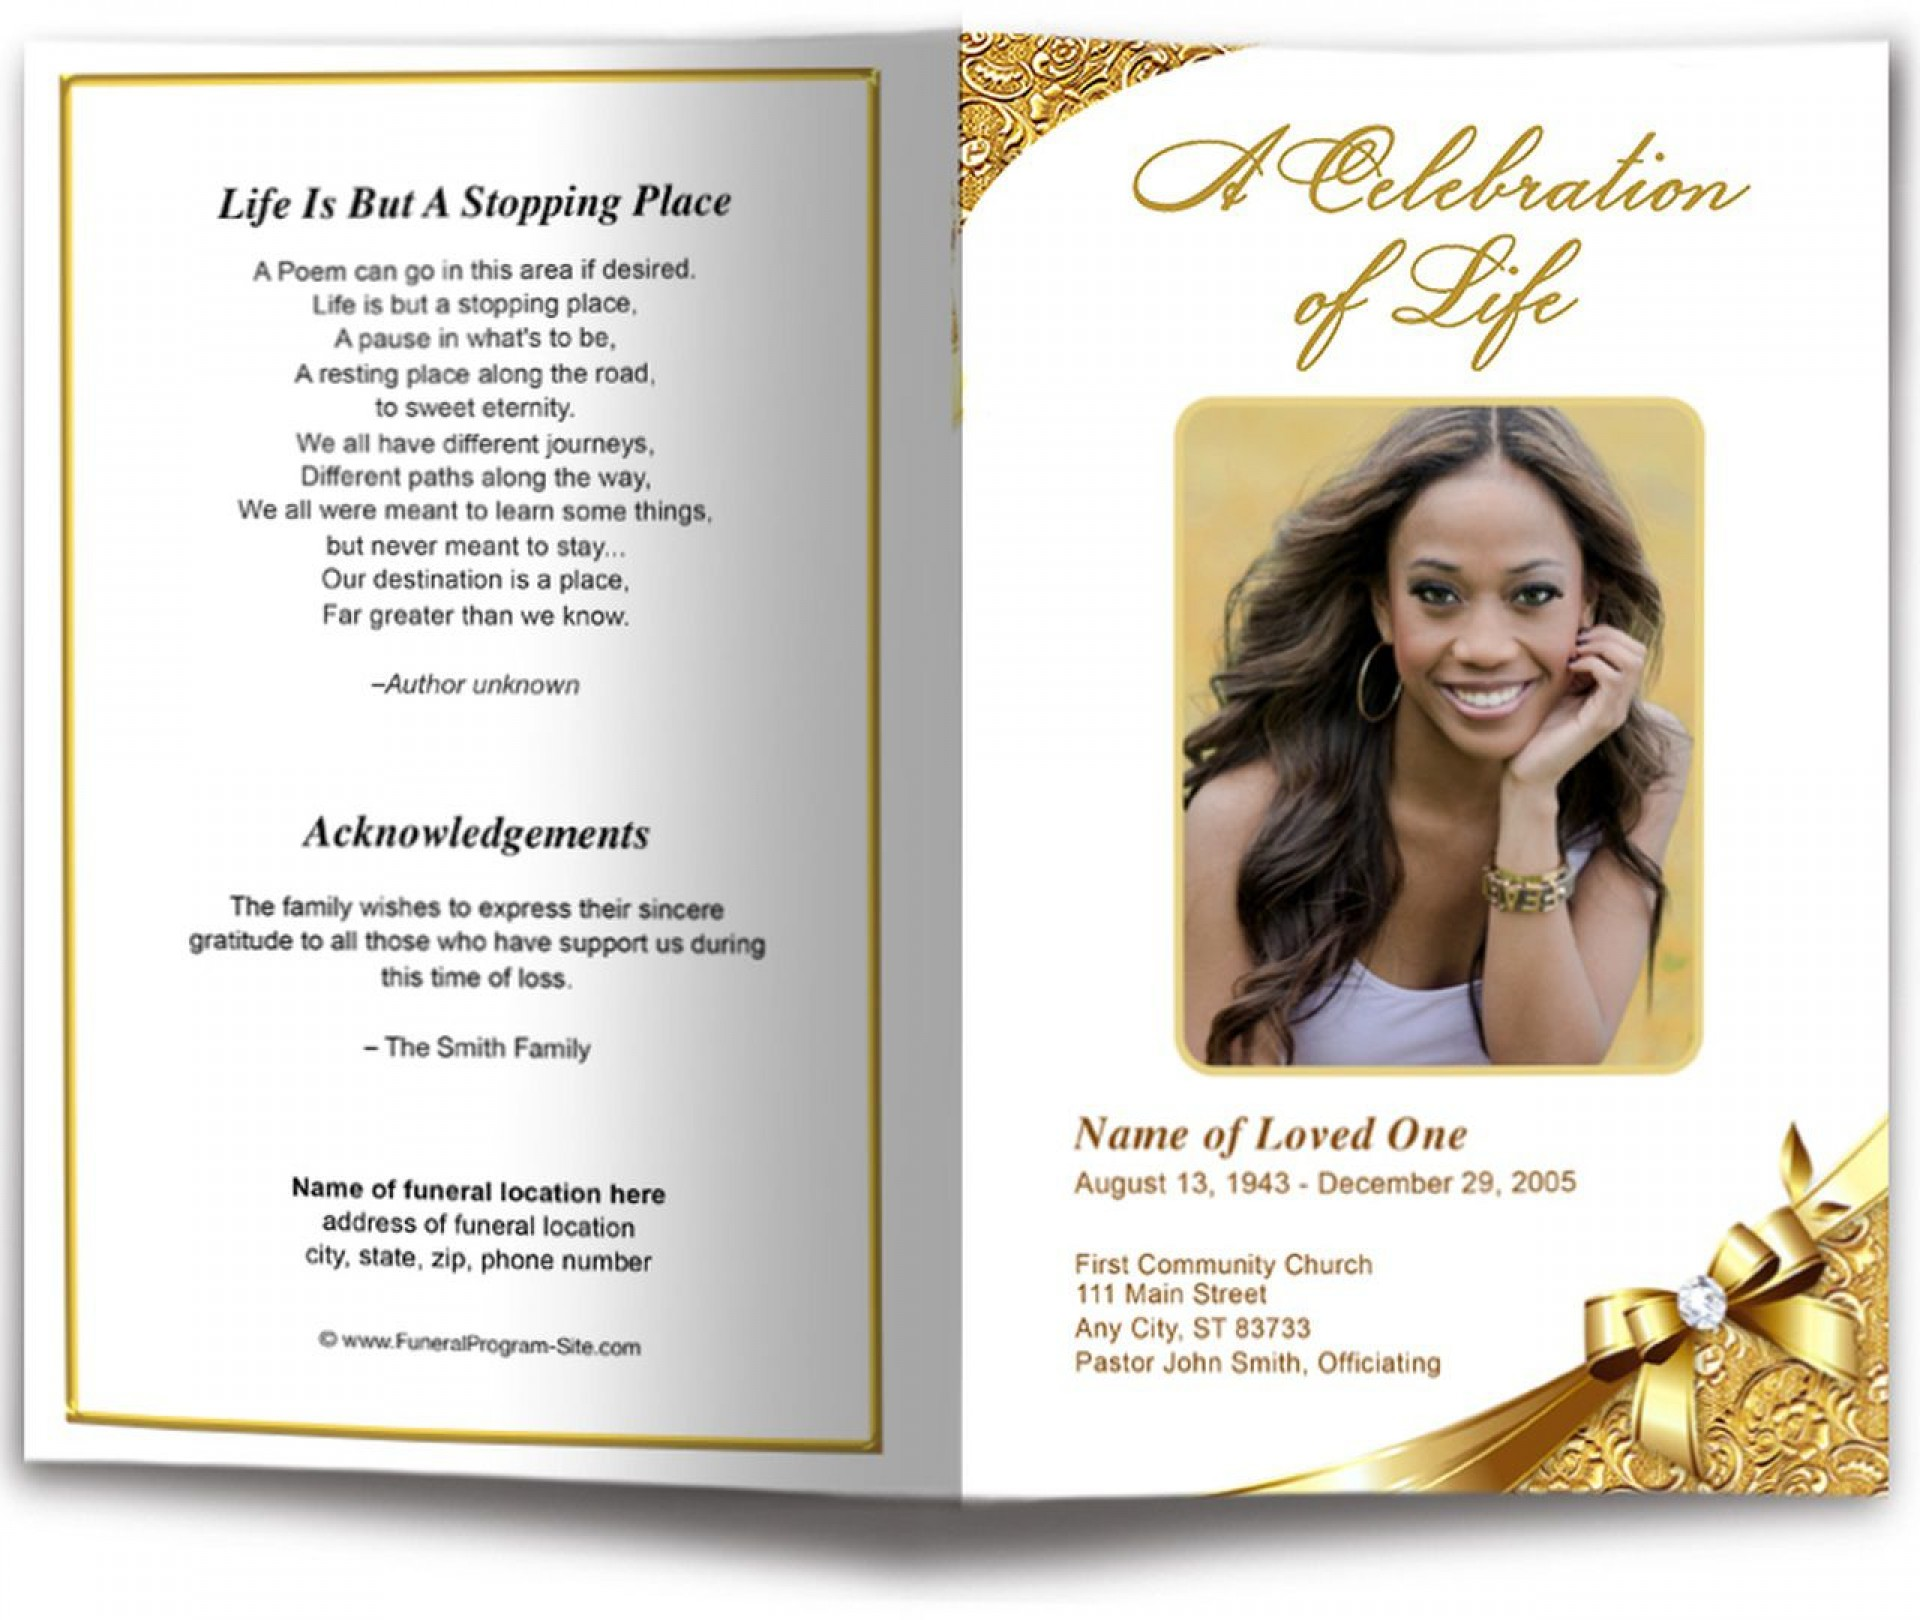 007 Astounding Funeral Program Template Free Example  Printable Design1920